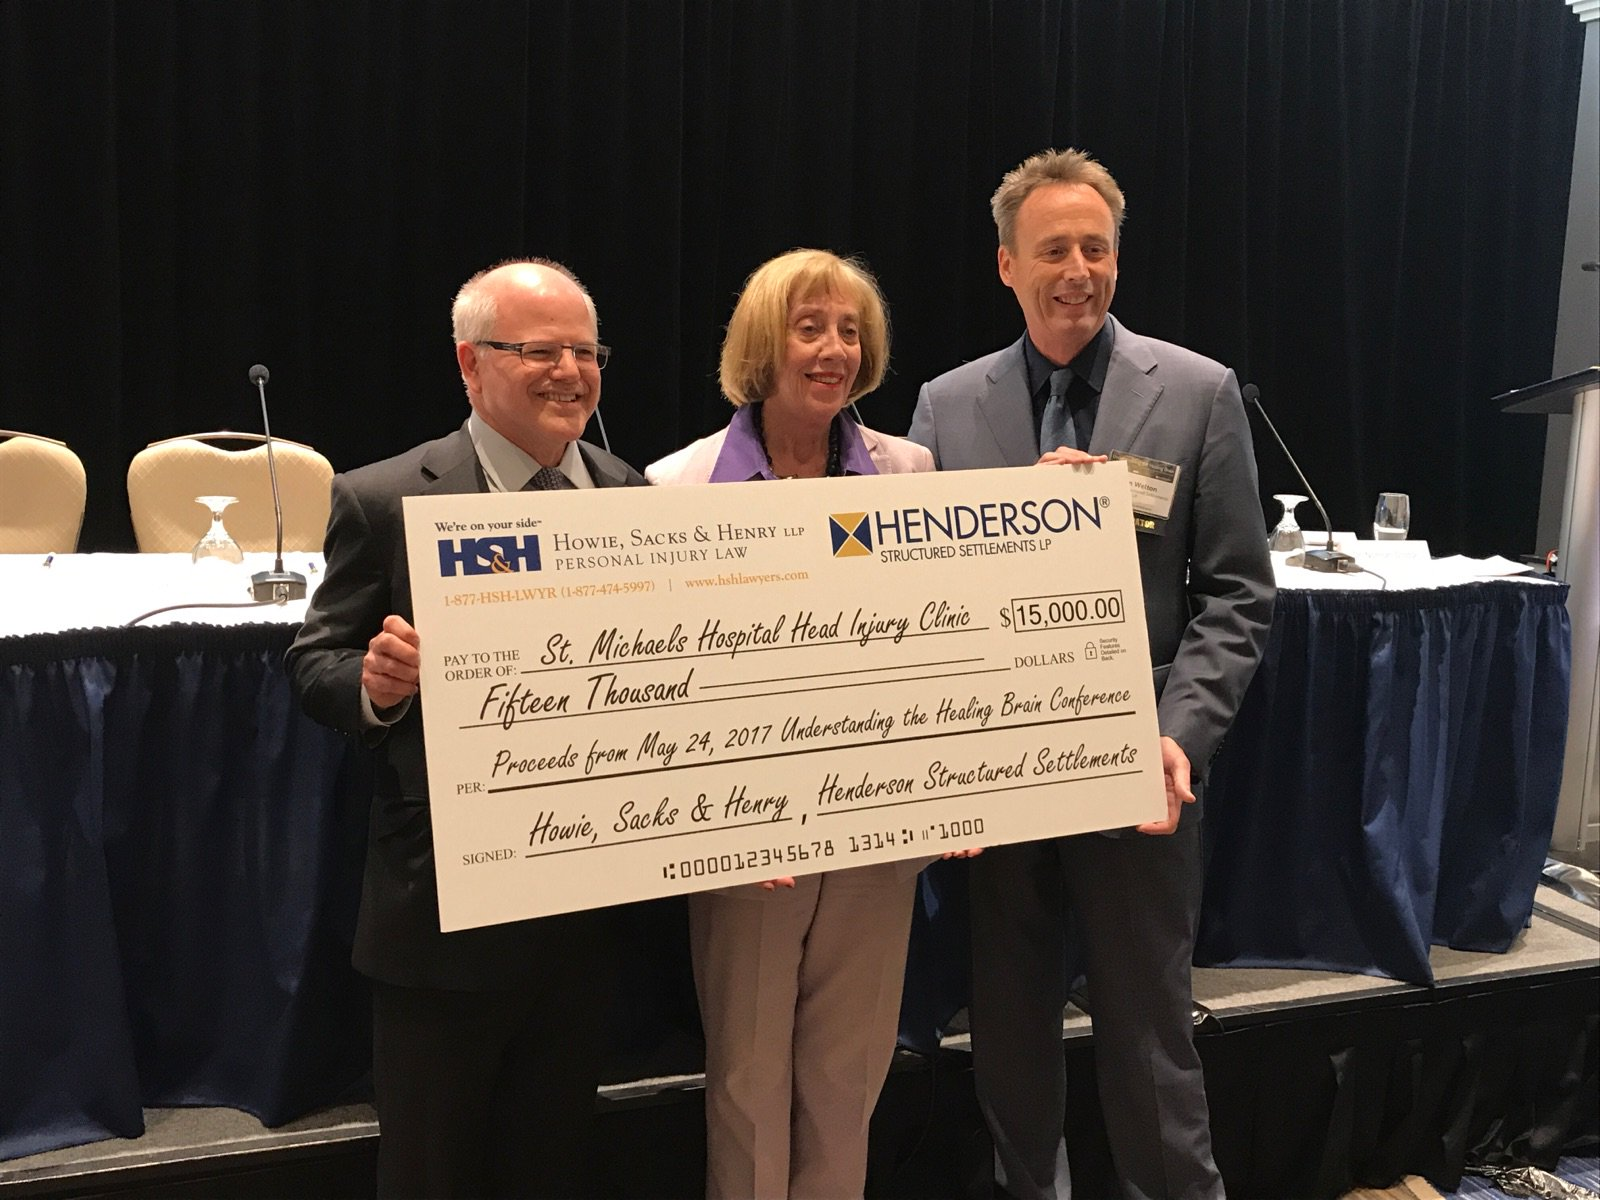 #HealingTheBrain Conference Raises $15,000 for St. Michael's Hospital Head Injury Clinic #HSHEvents https://t.co/n01l15pHlj